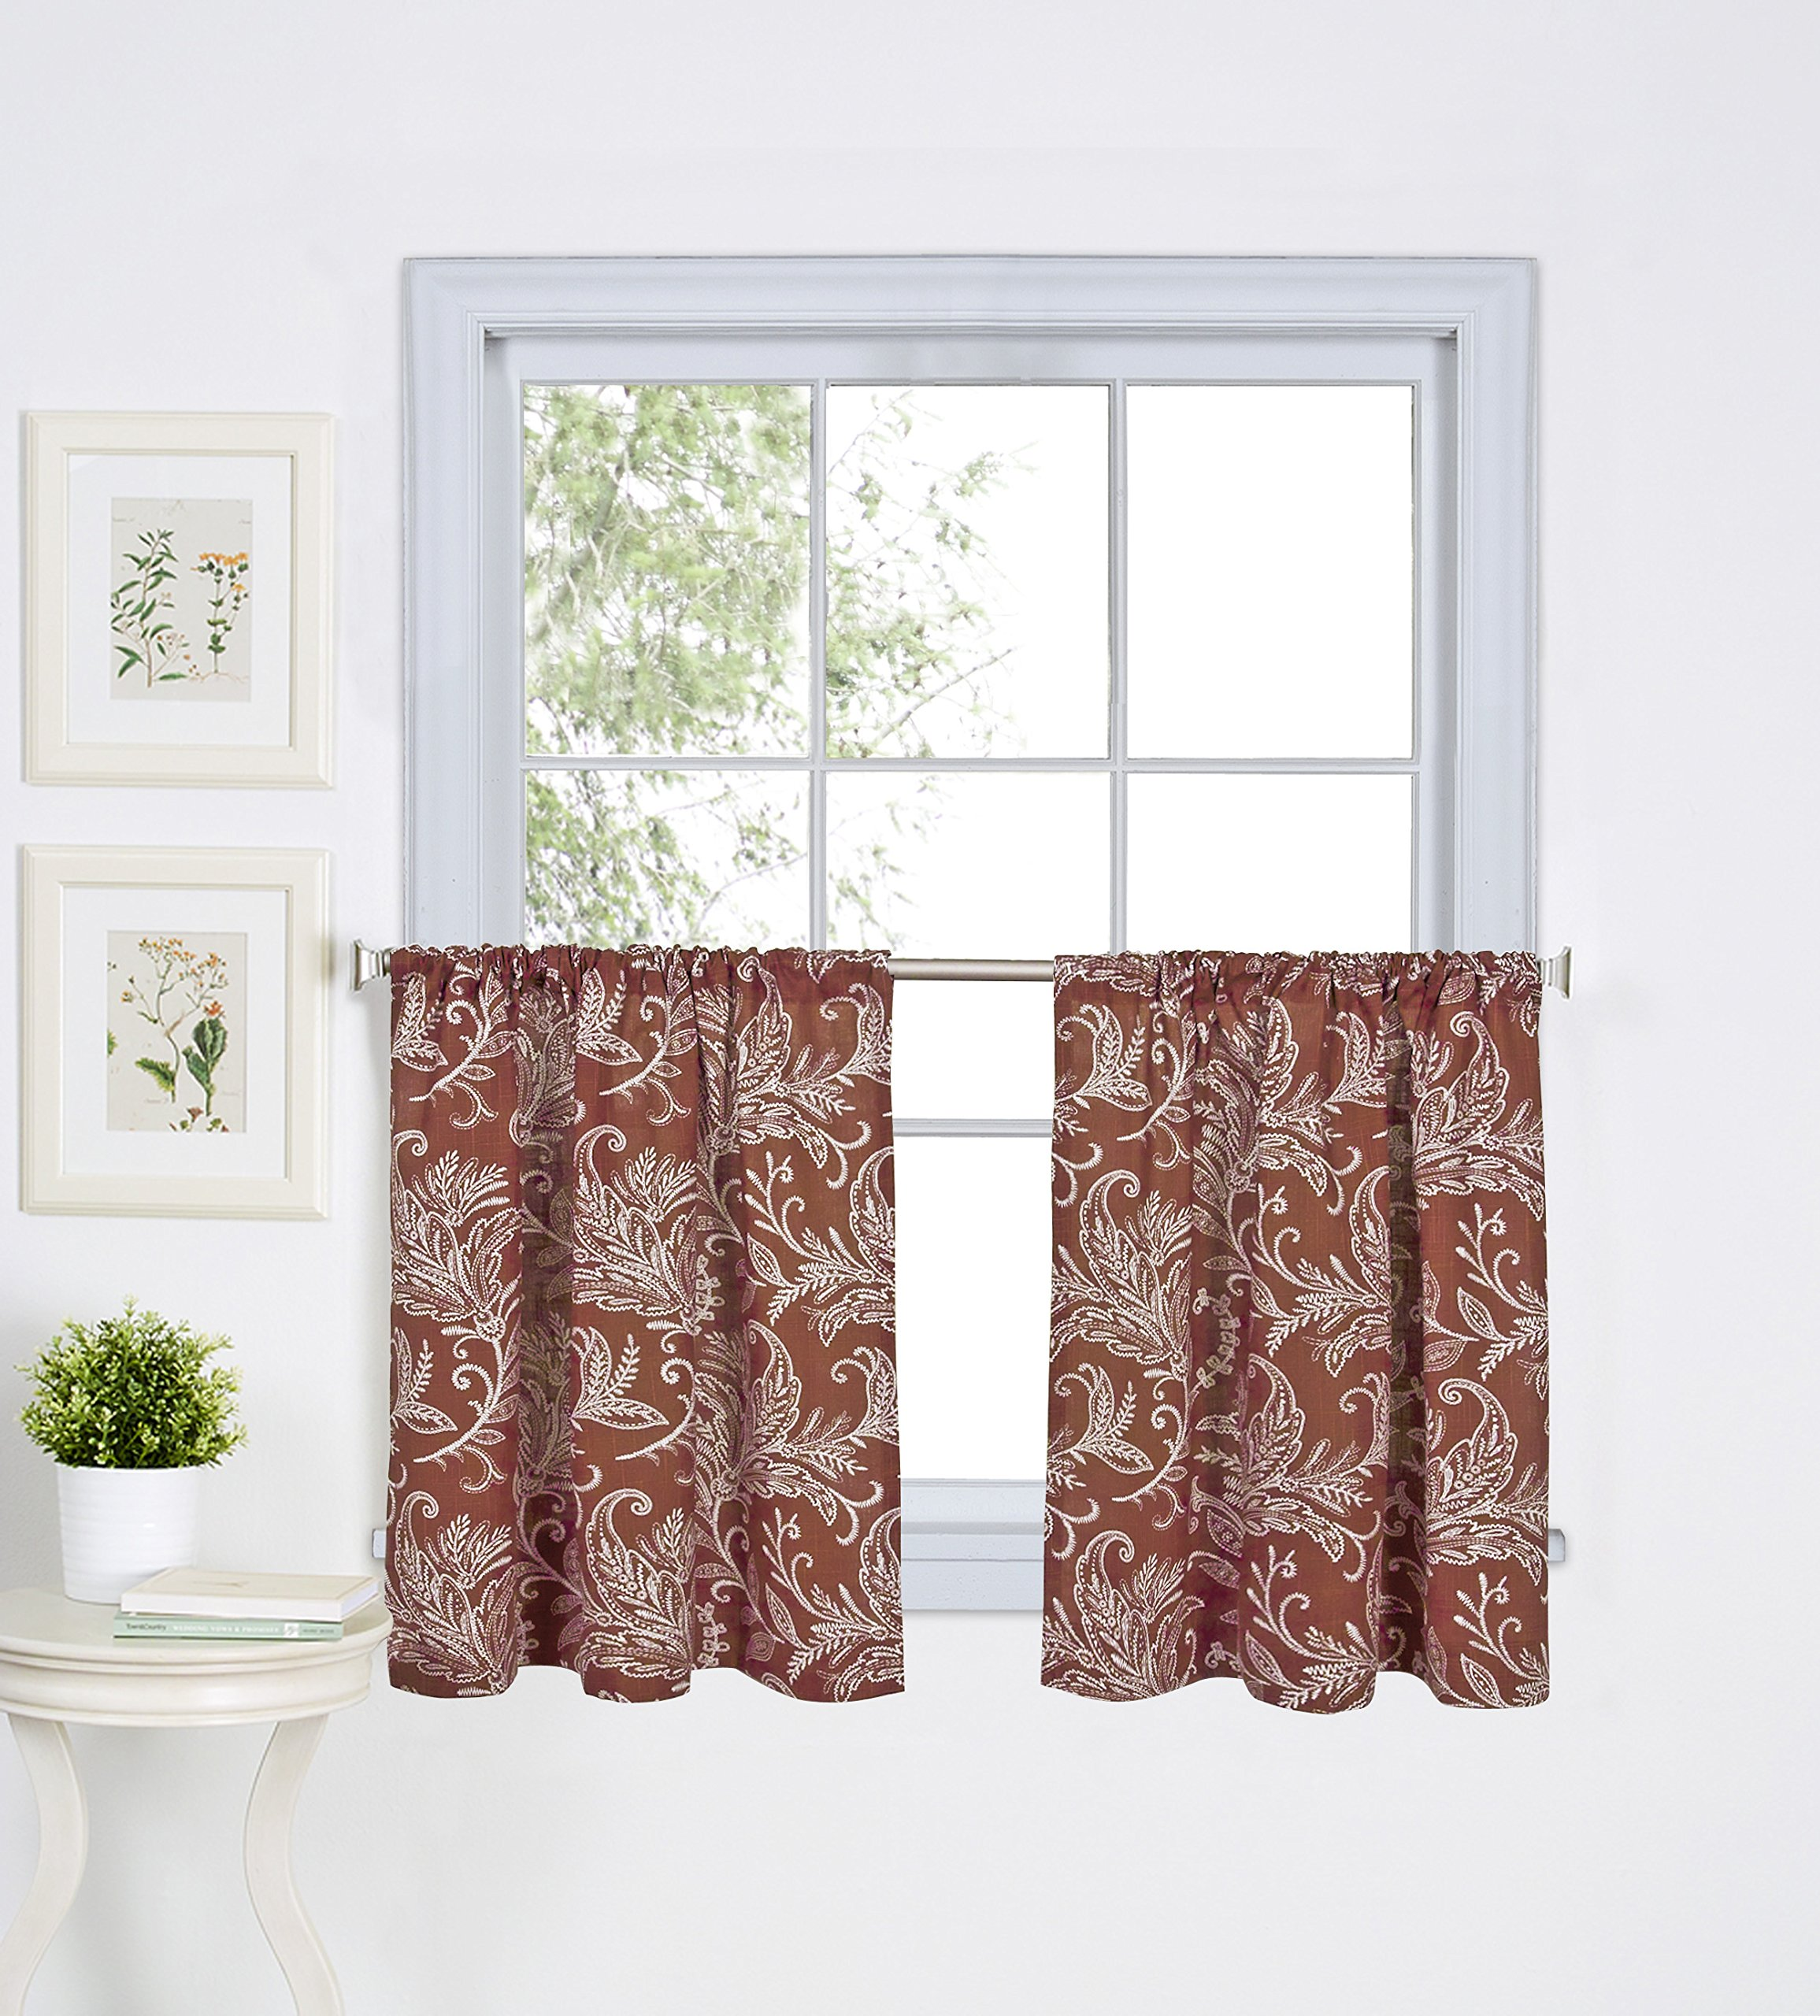 Elrene Home Fashions 26865775716 Floral Rod Pocket Kitchen/Café Tier Window Curtain, Set of 2, 30'' x 24'', Spice by Elrene